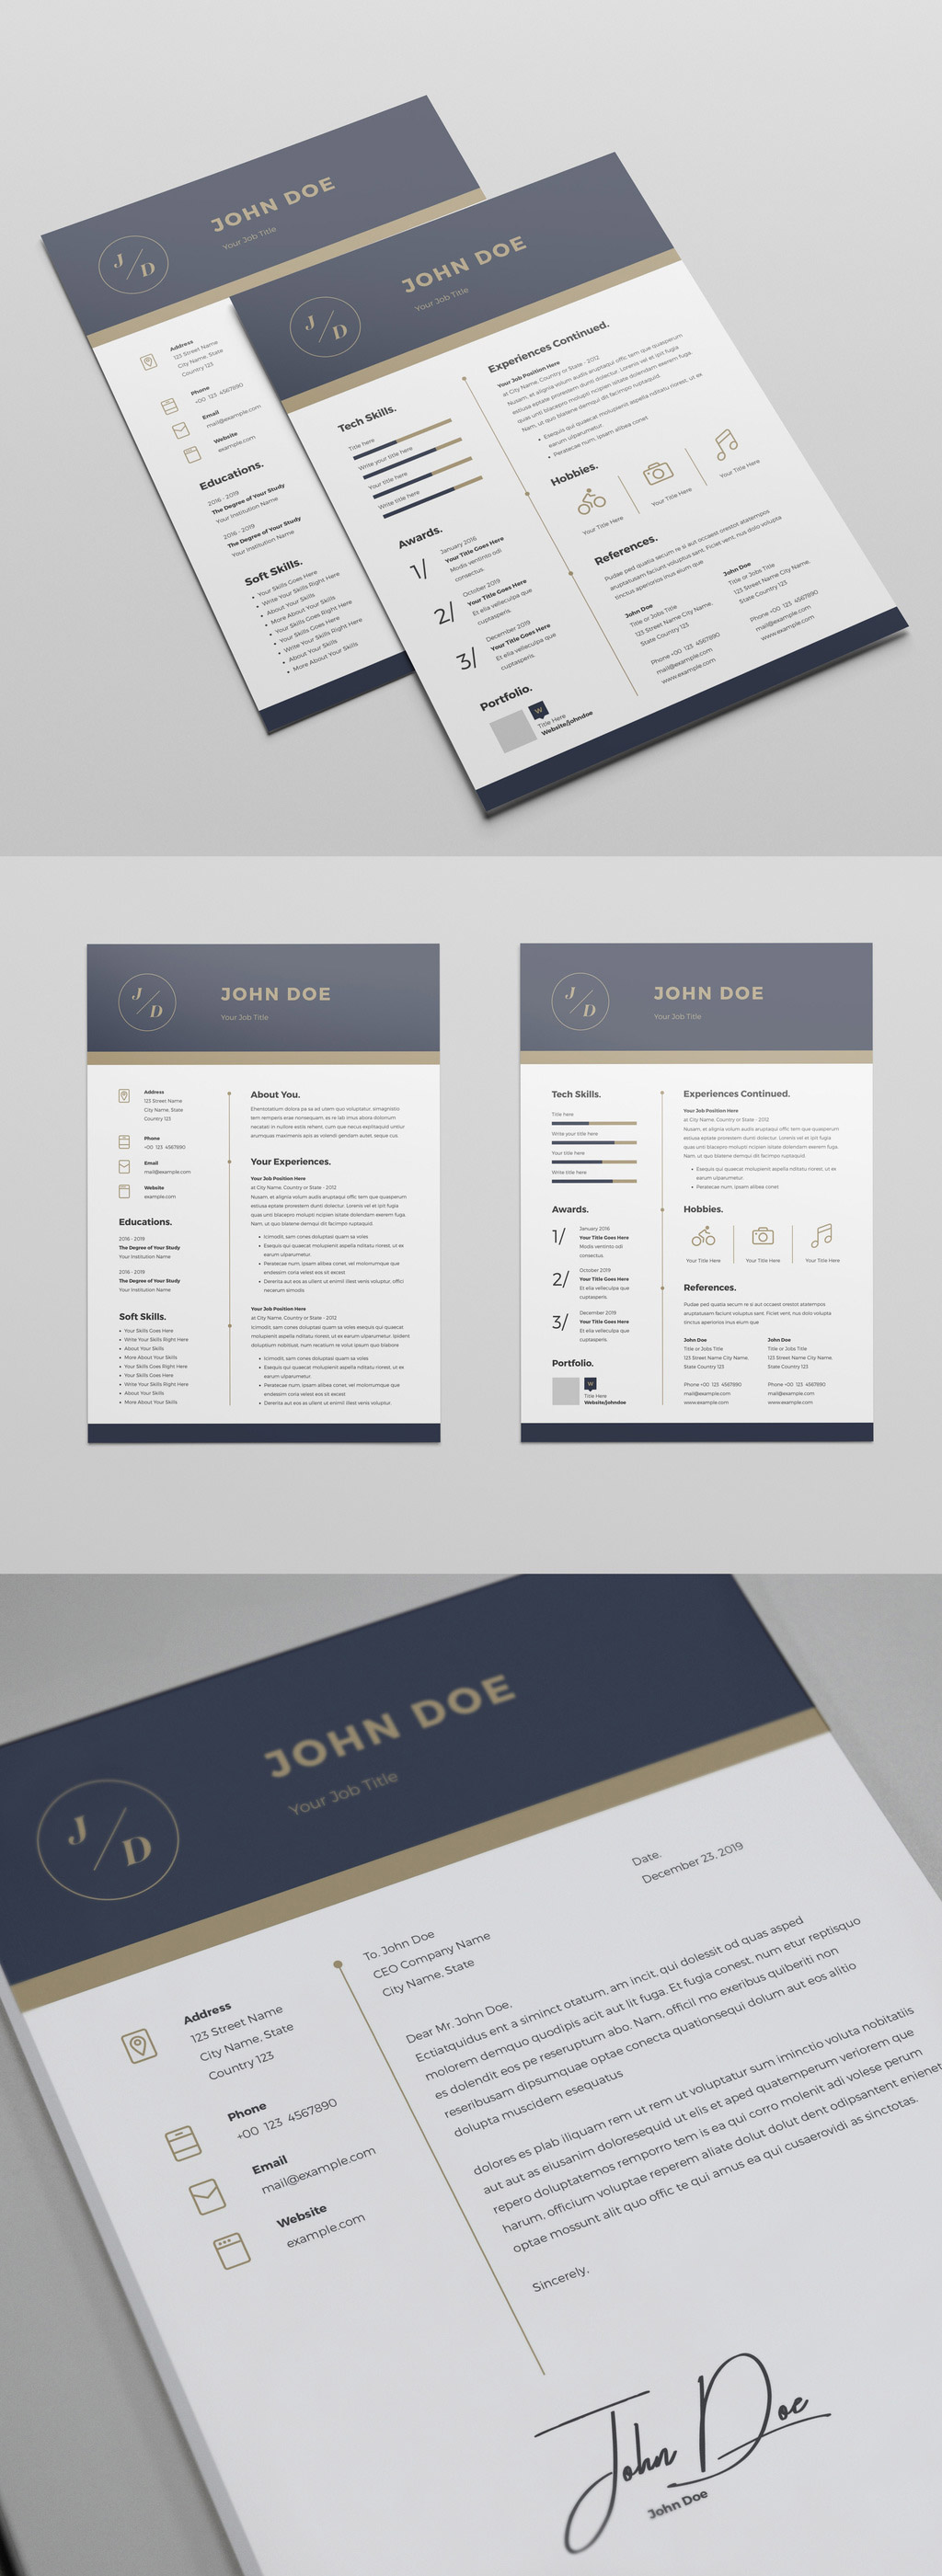 Resume InDesign Template with Blue and Gold Header